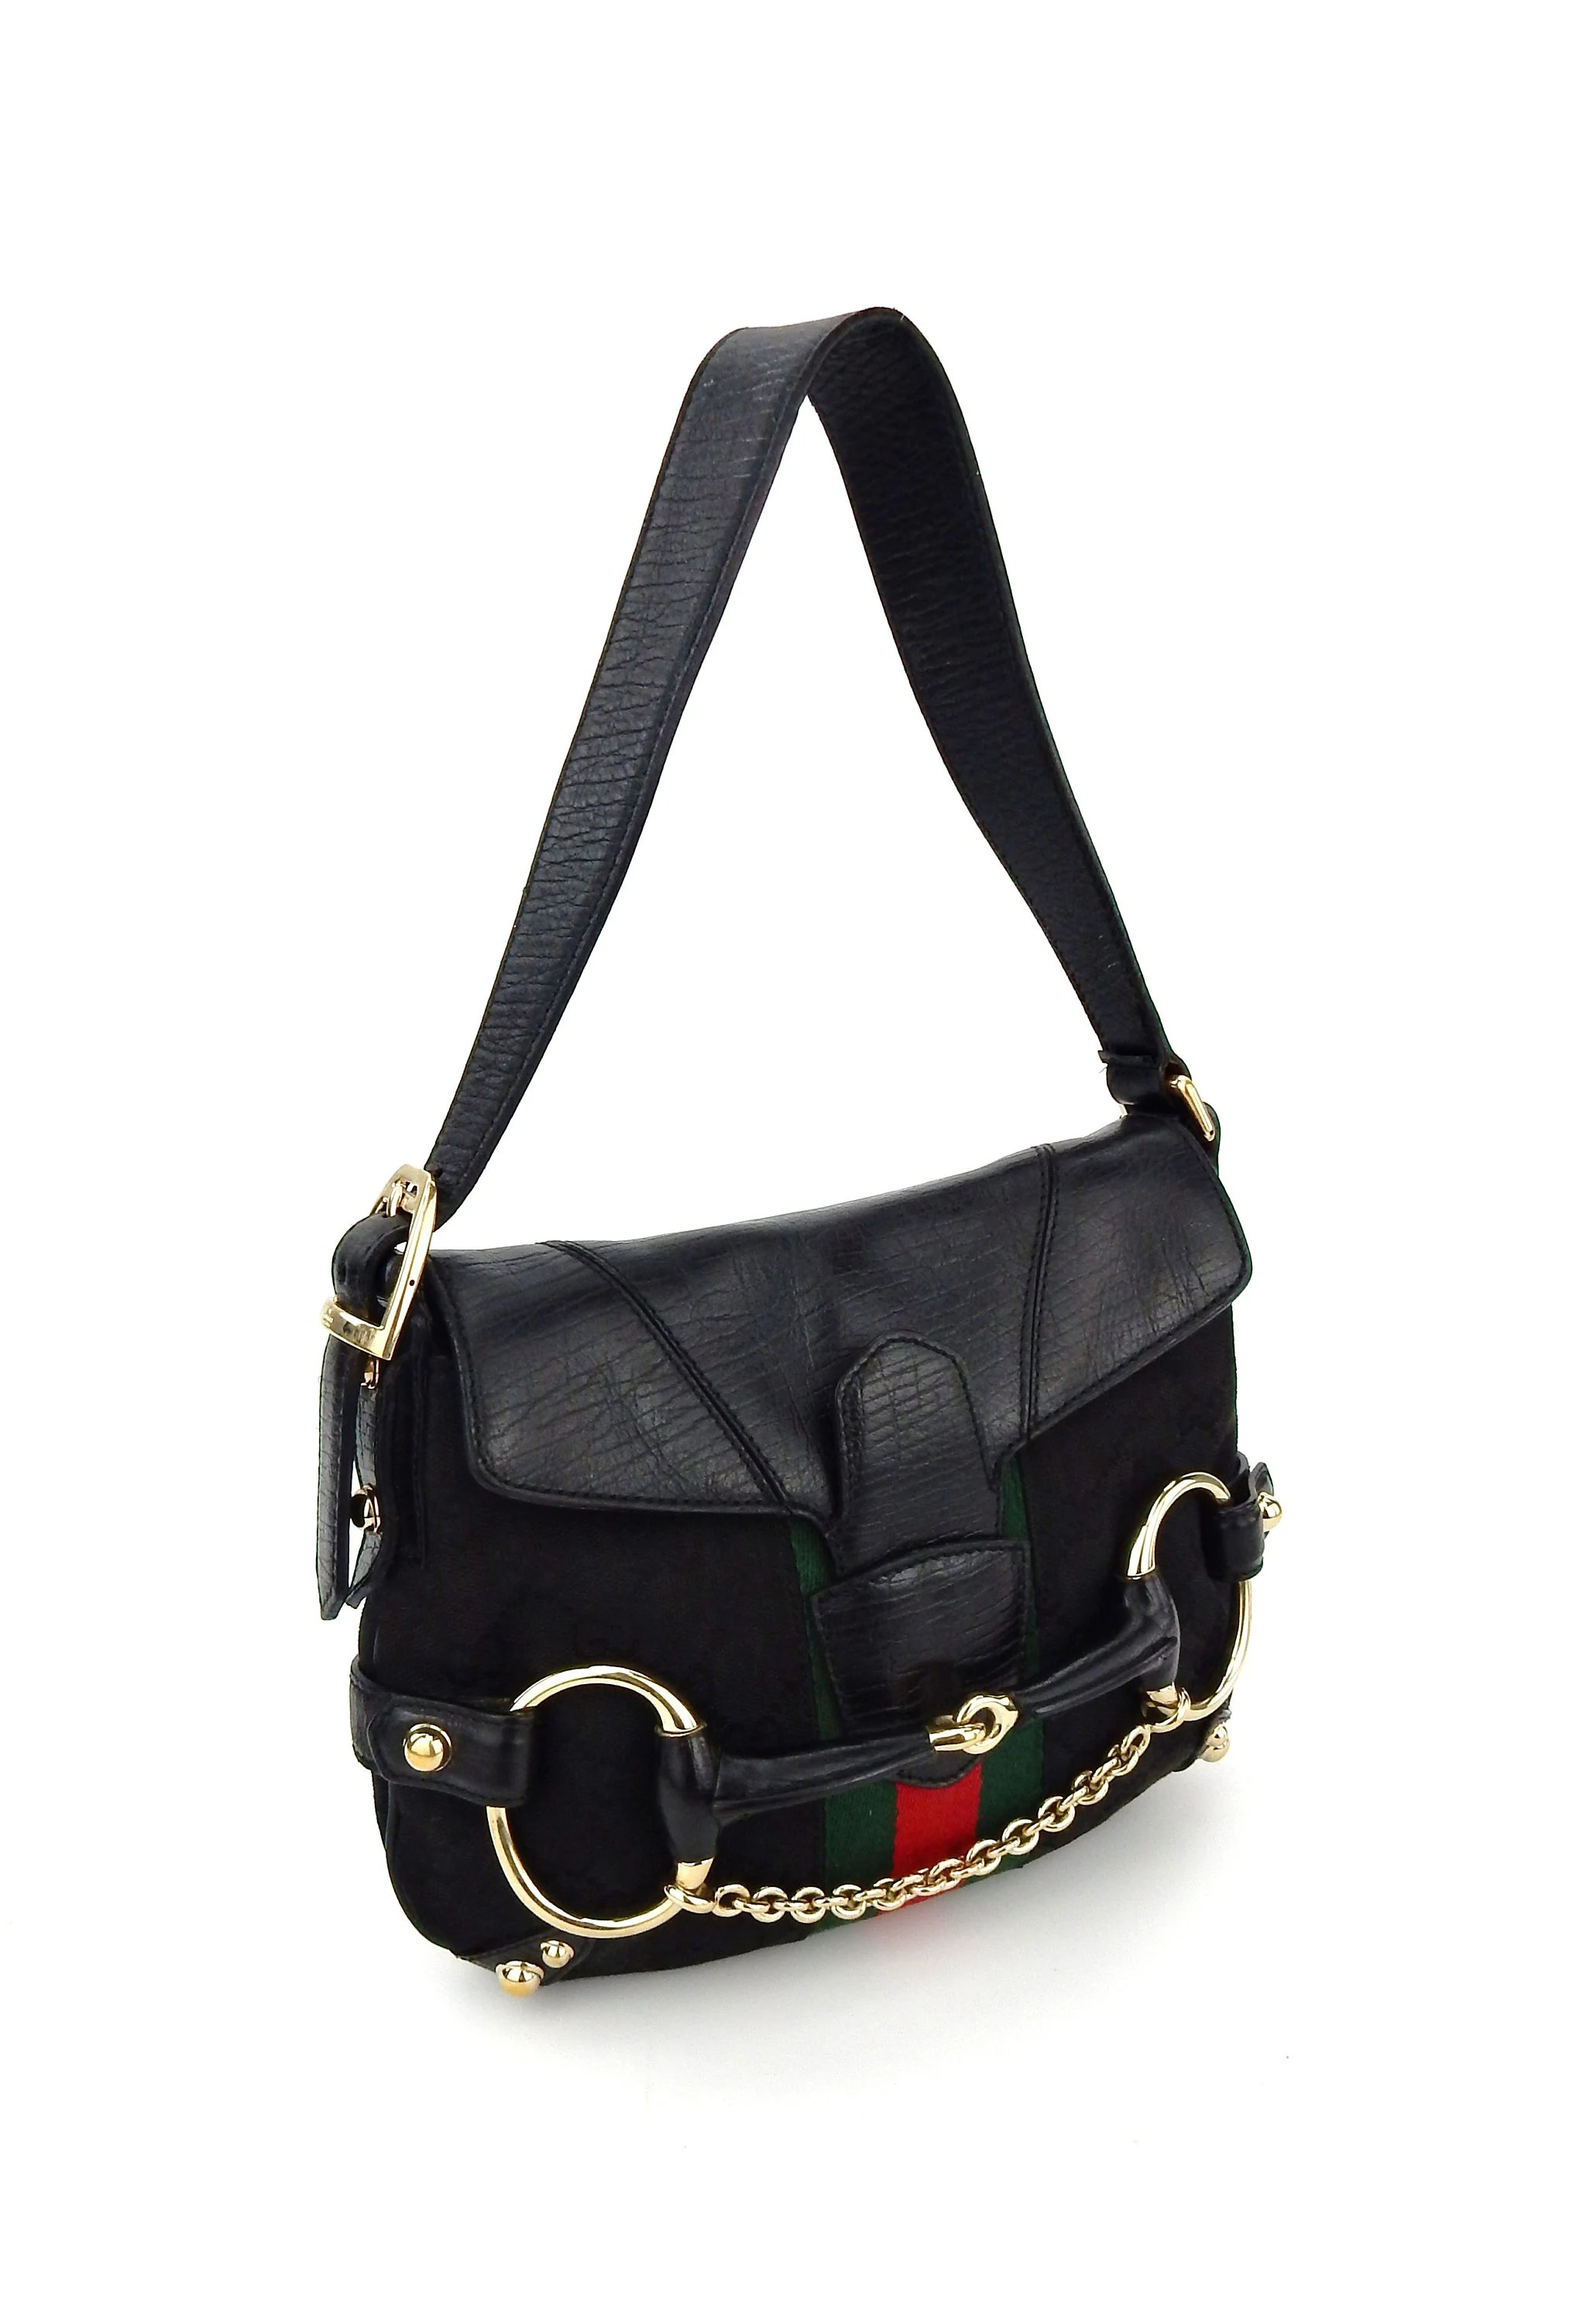 Etsy Vintage Gucci Authentic Vintage Gucci Black Horsebit Web Gg Monogram Canvas Leather Shoulder Bag Italy